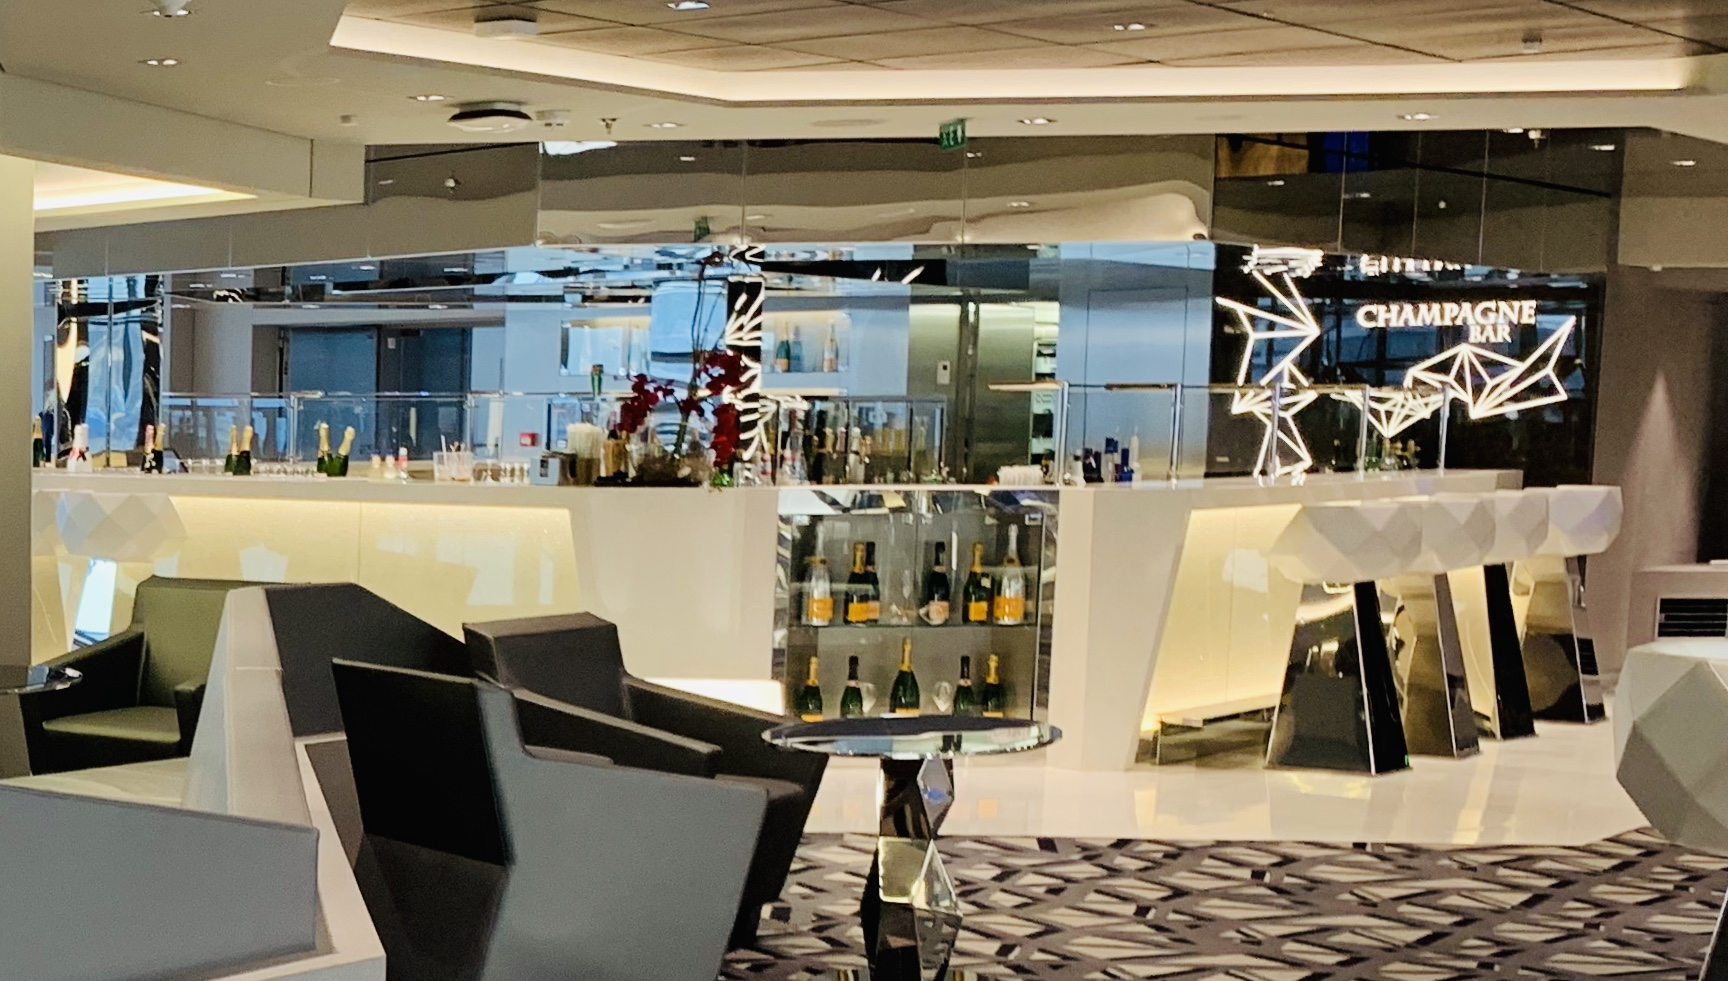 The lovely champagne bar